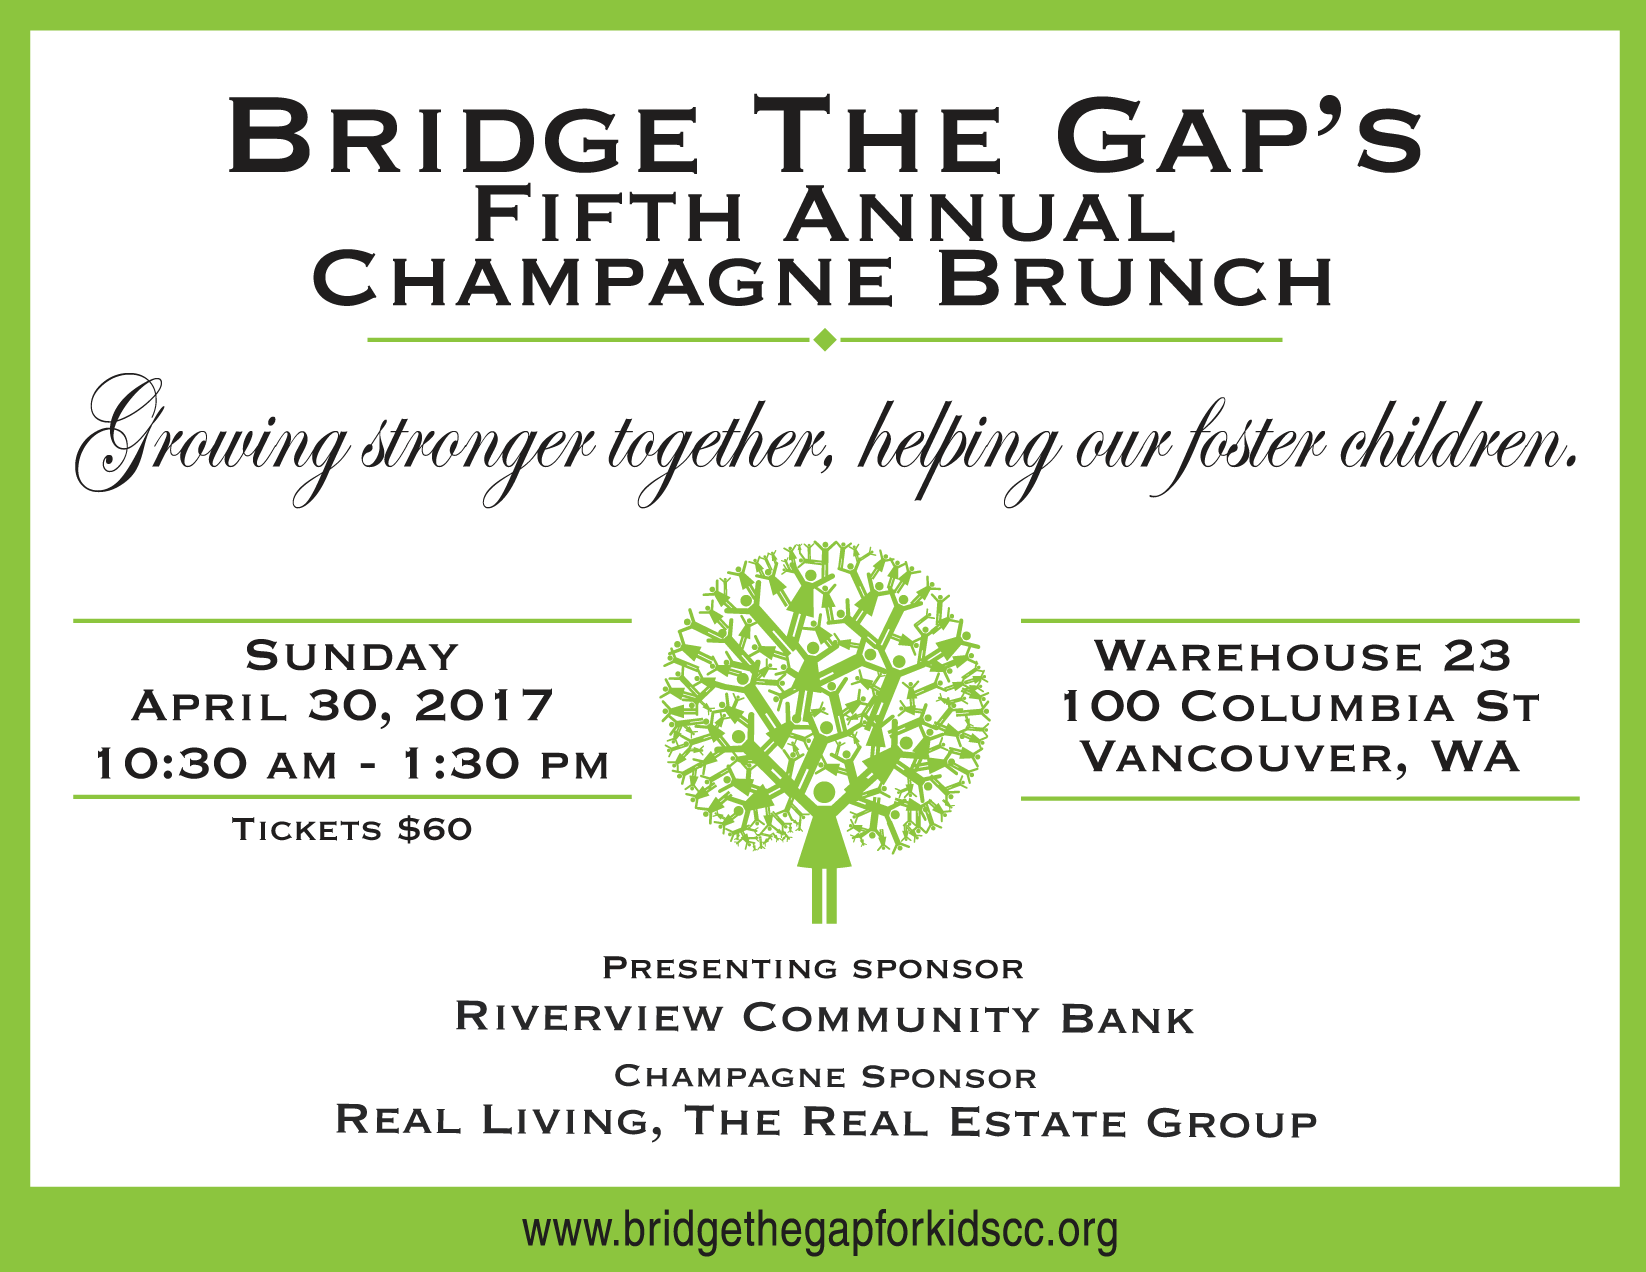 BTG Champagne Brunch Invitation 2017 32017